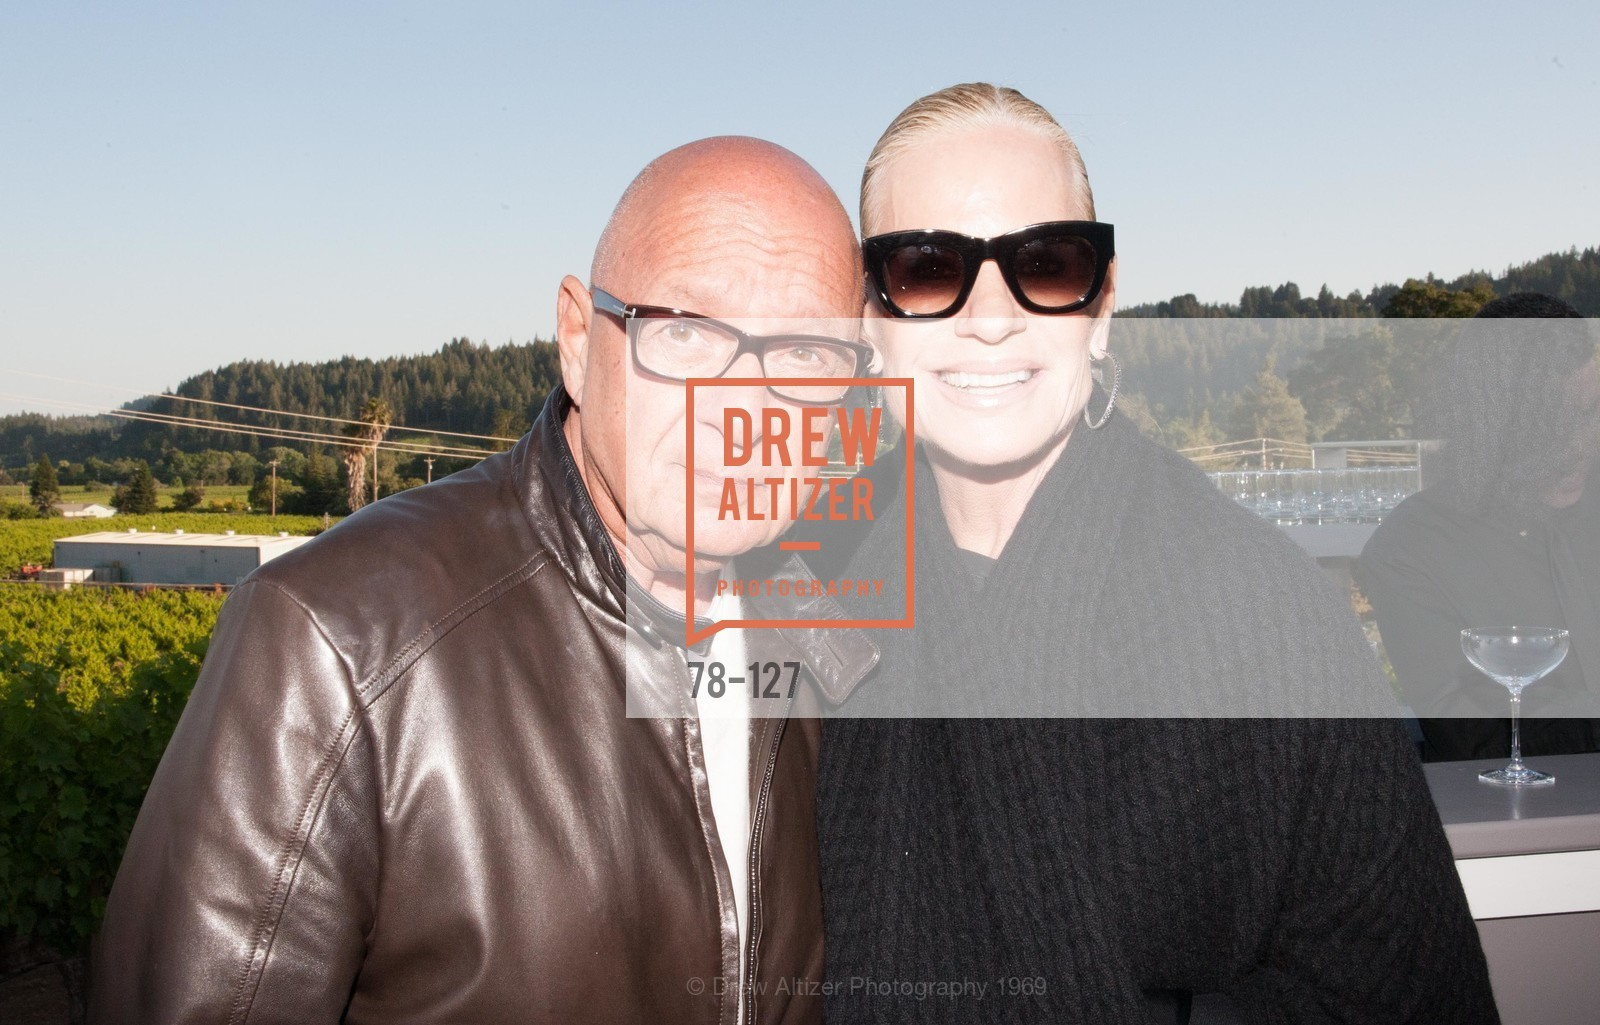 Paul Geliebter, Susan Geliebter, An Evening in the Vineyard hosted by JACK CALHOUN & TRENT NORRIS, Jack Calhoun & Trent Norris Vineyard. 3393 Dry Creek Road, Healdsburg CA 95448, May 22nd, 2015,Drew Altizer, Drew Altizer Photography, full-service agency, private events, San Francisco photographer, photographer california